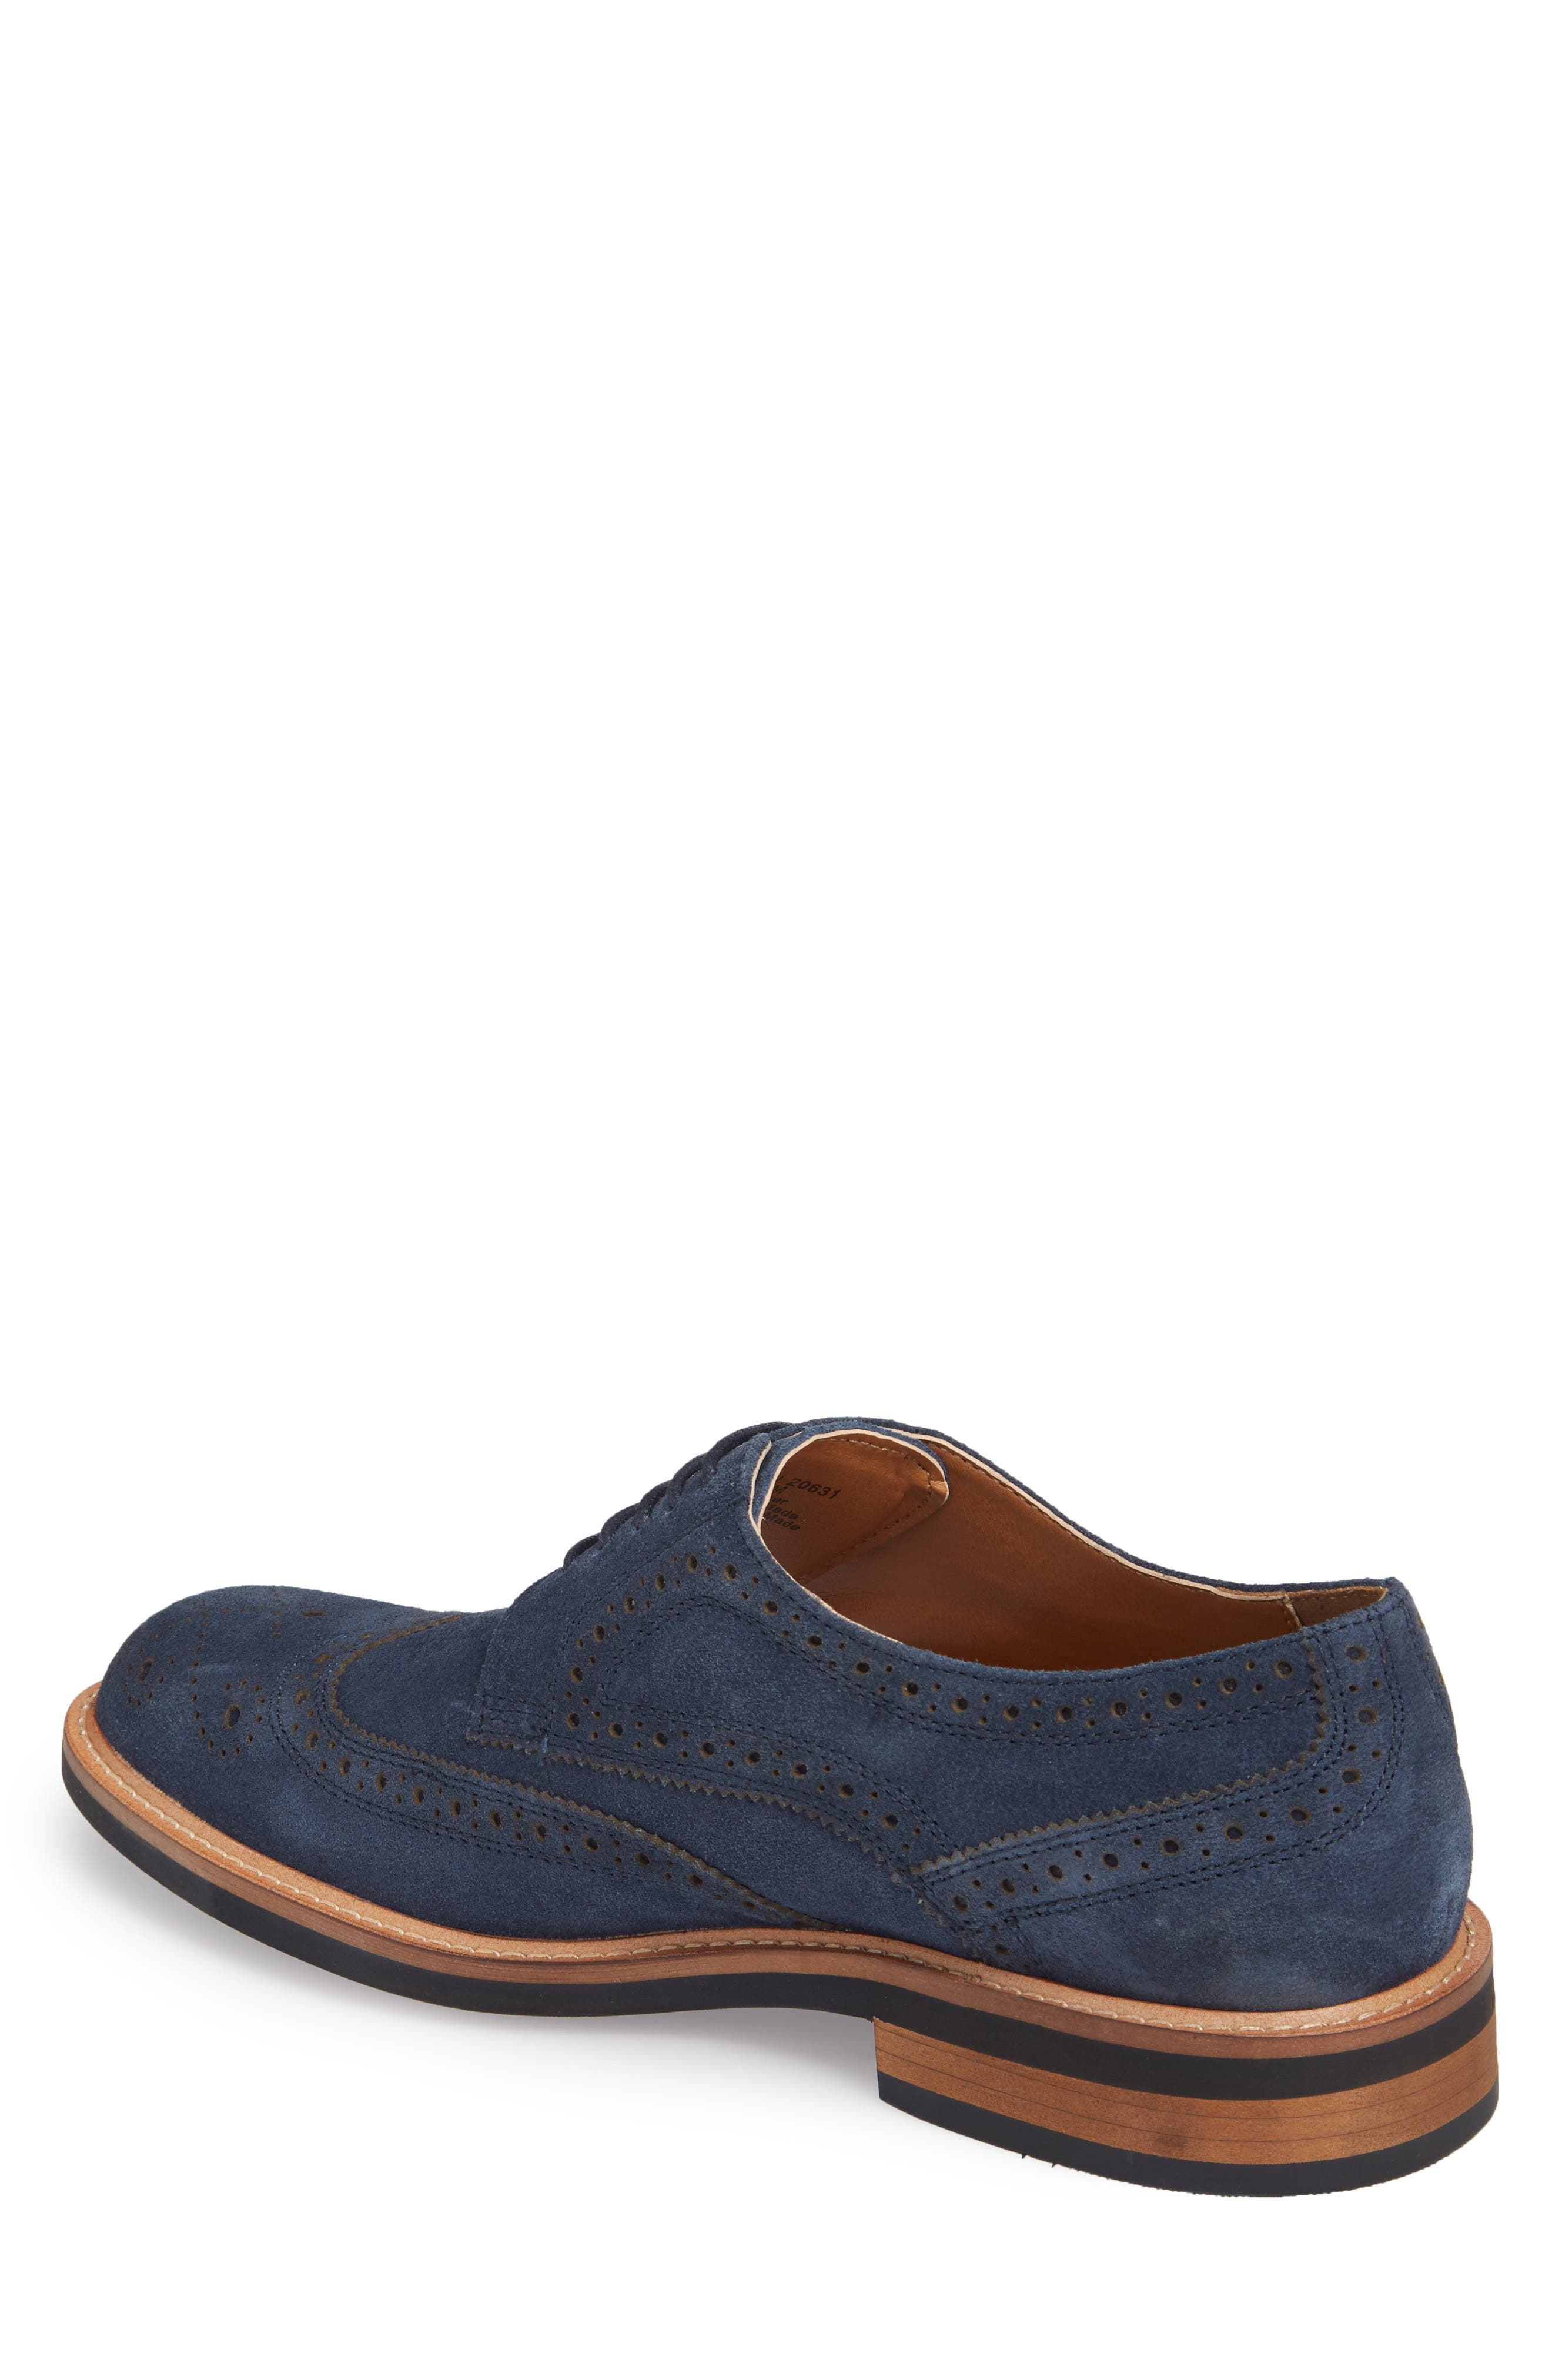 Kenneth Cole Reaction Wingtip,                             Alternate thumbnail 7, color,